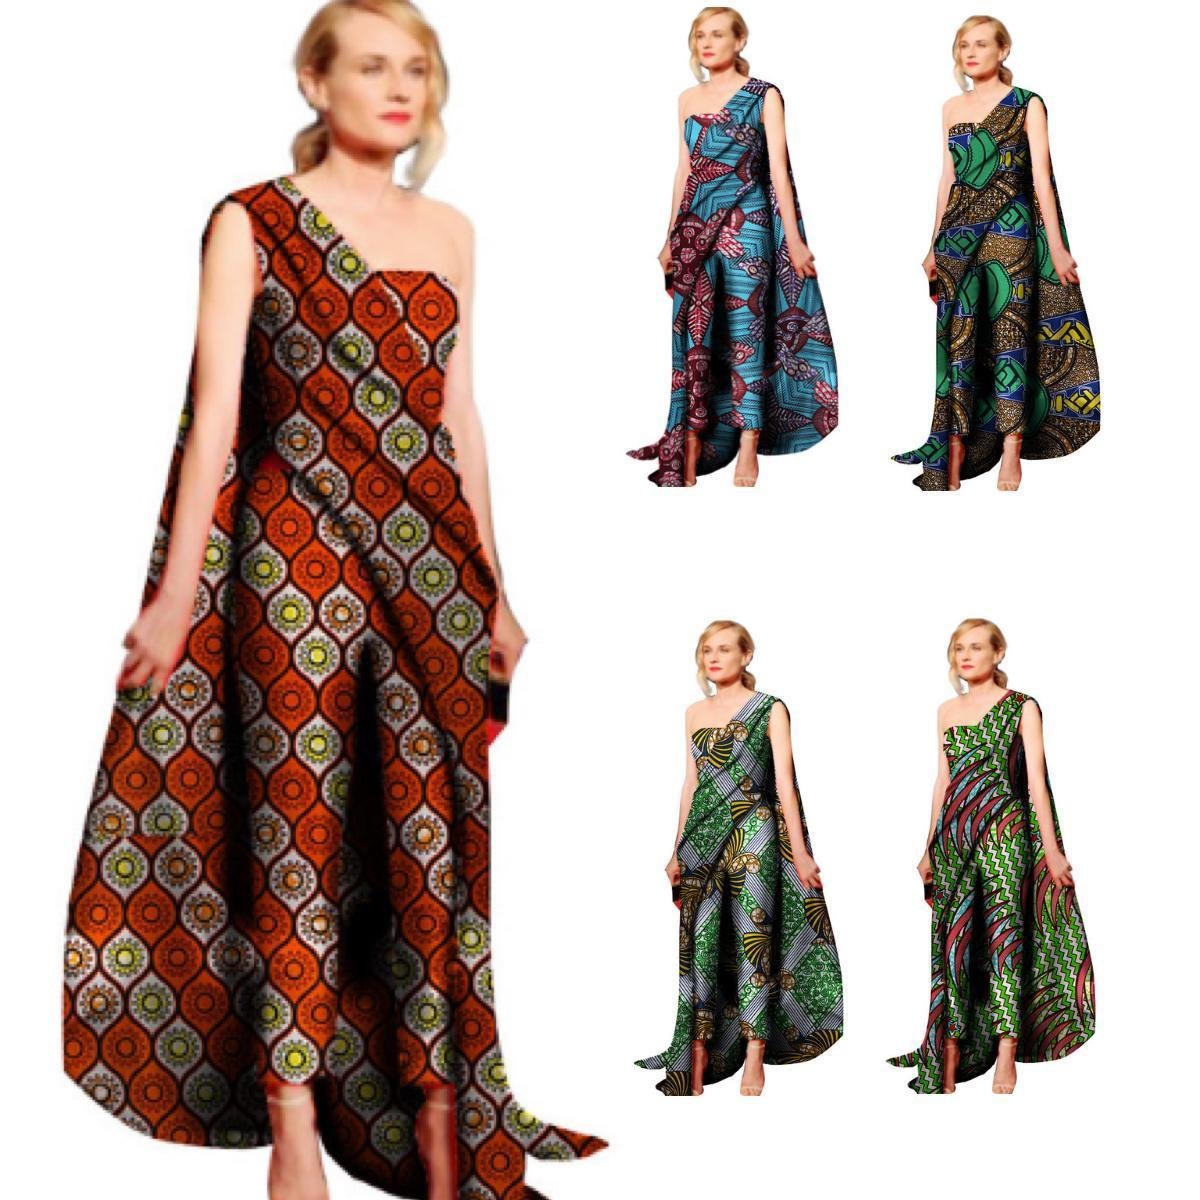 a4c23d5aebb Amazon.com  African Clothing For Women Kitenge Cotton Wax Print Romper  Jumpsuit  Clothing